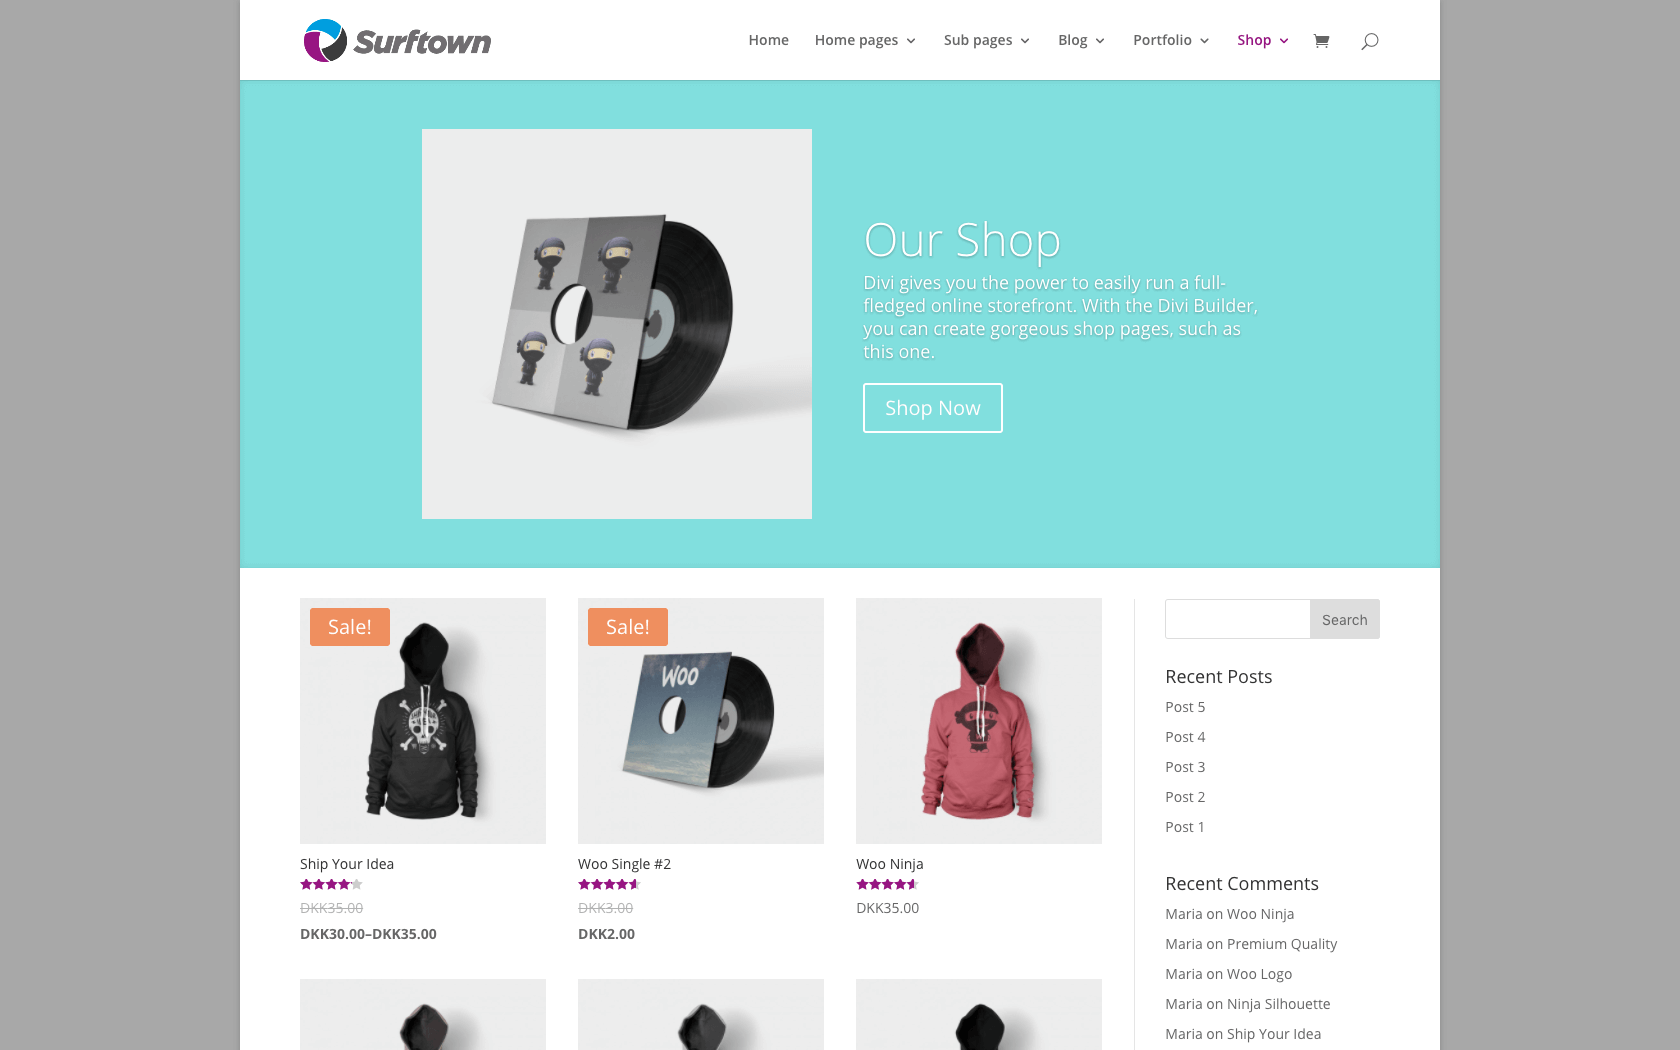 surftown-wp-shop-webshop-layout-2